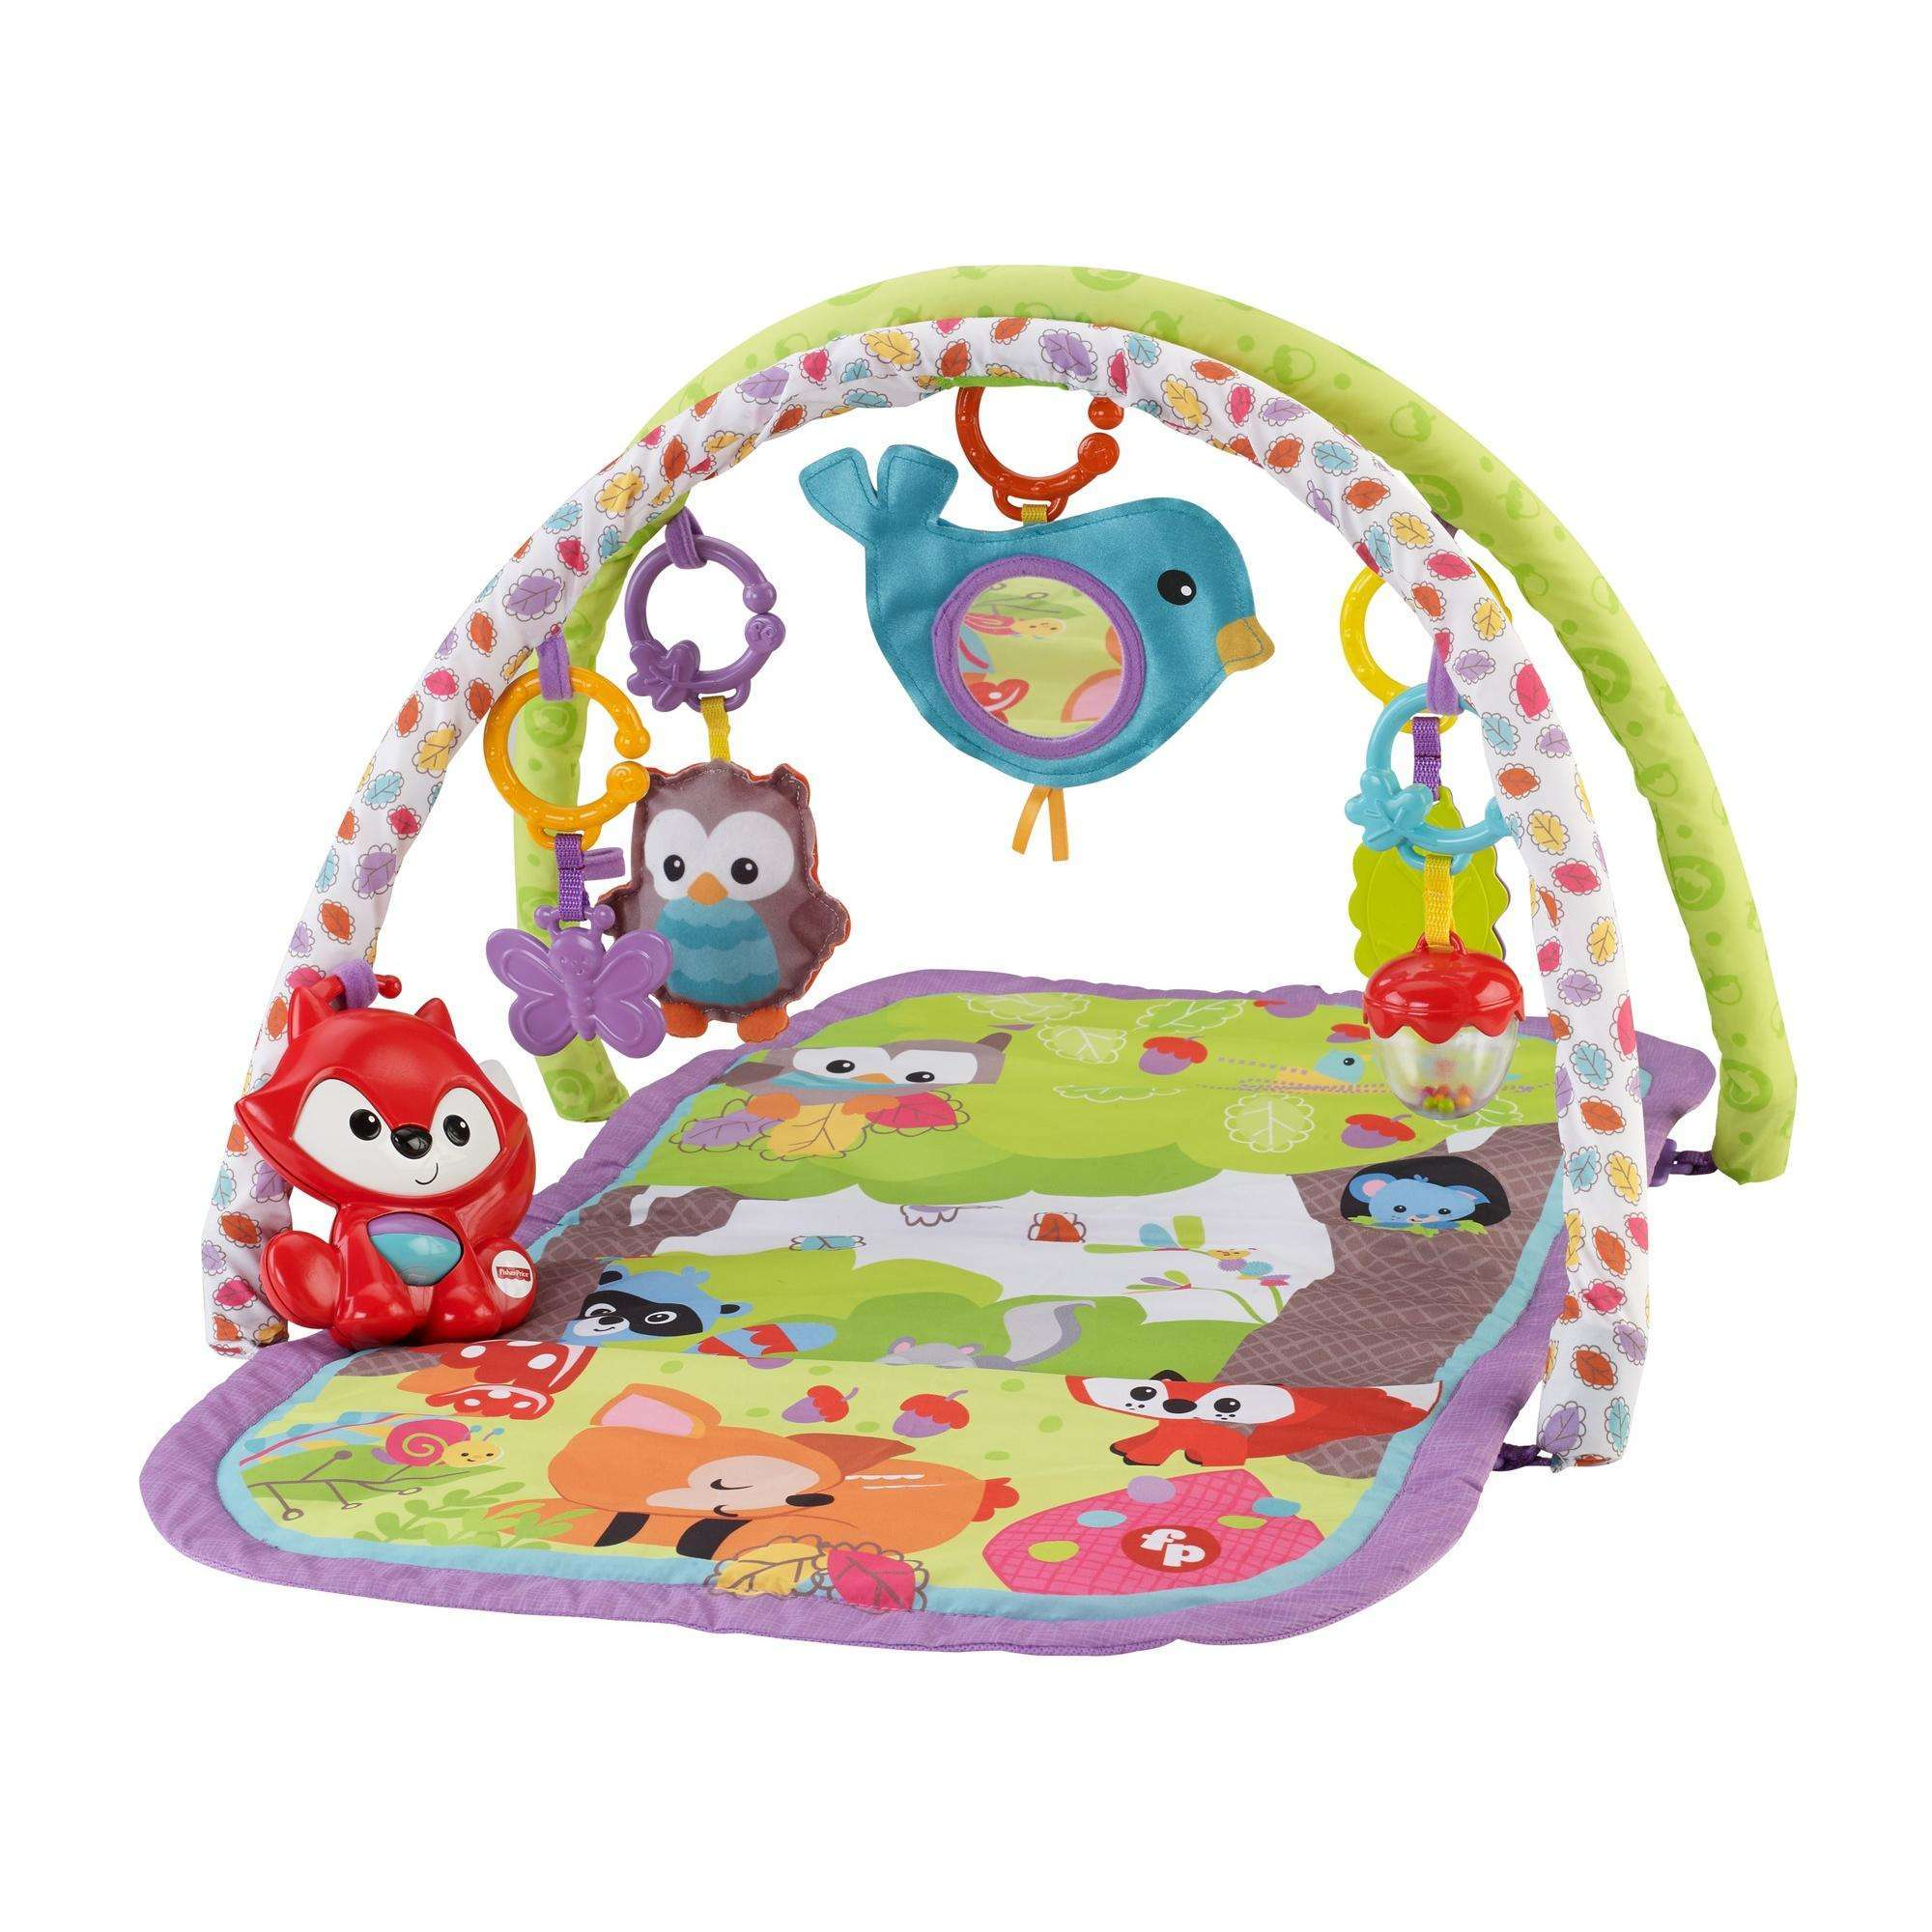 Fisher Price 3-in-1 Musical Activity Gym by Fisher-Price